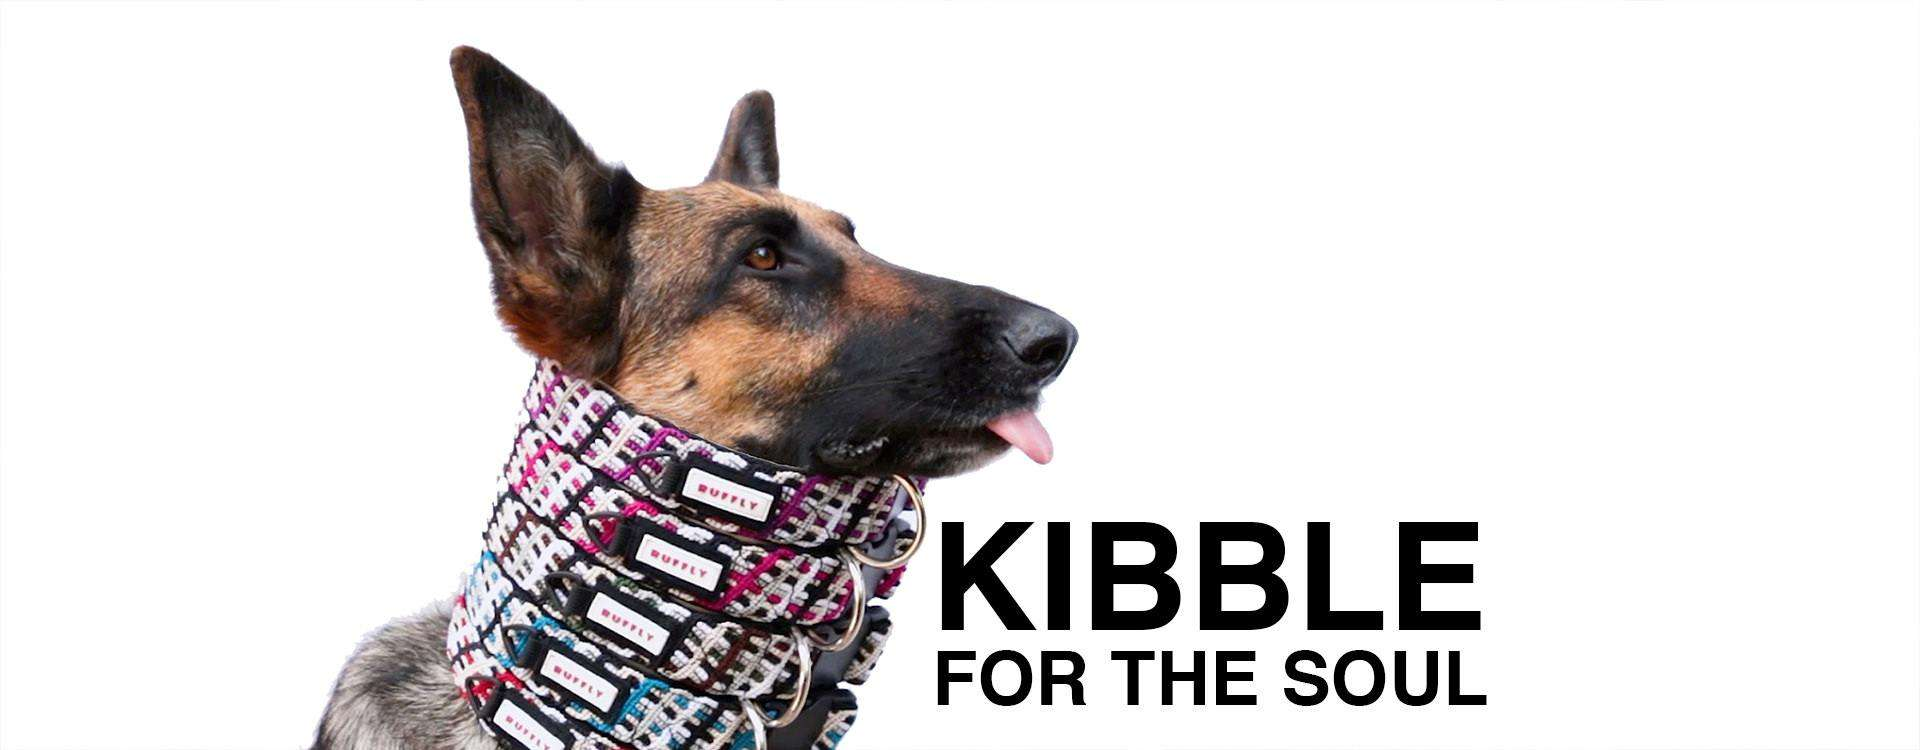 """German Shepherd with tongue out wears five collars in different colors and overlaid text: """"KIBBLE FOR THE SOUL"""""""